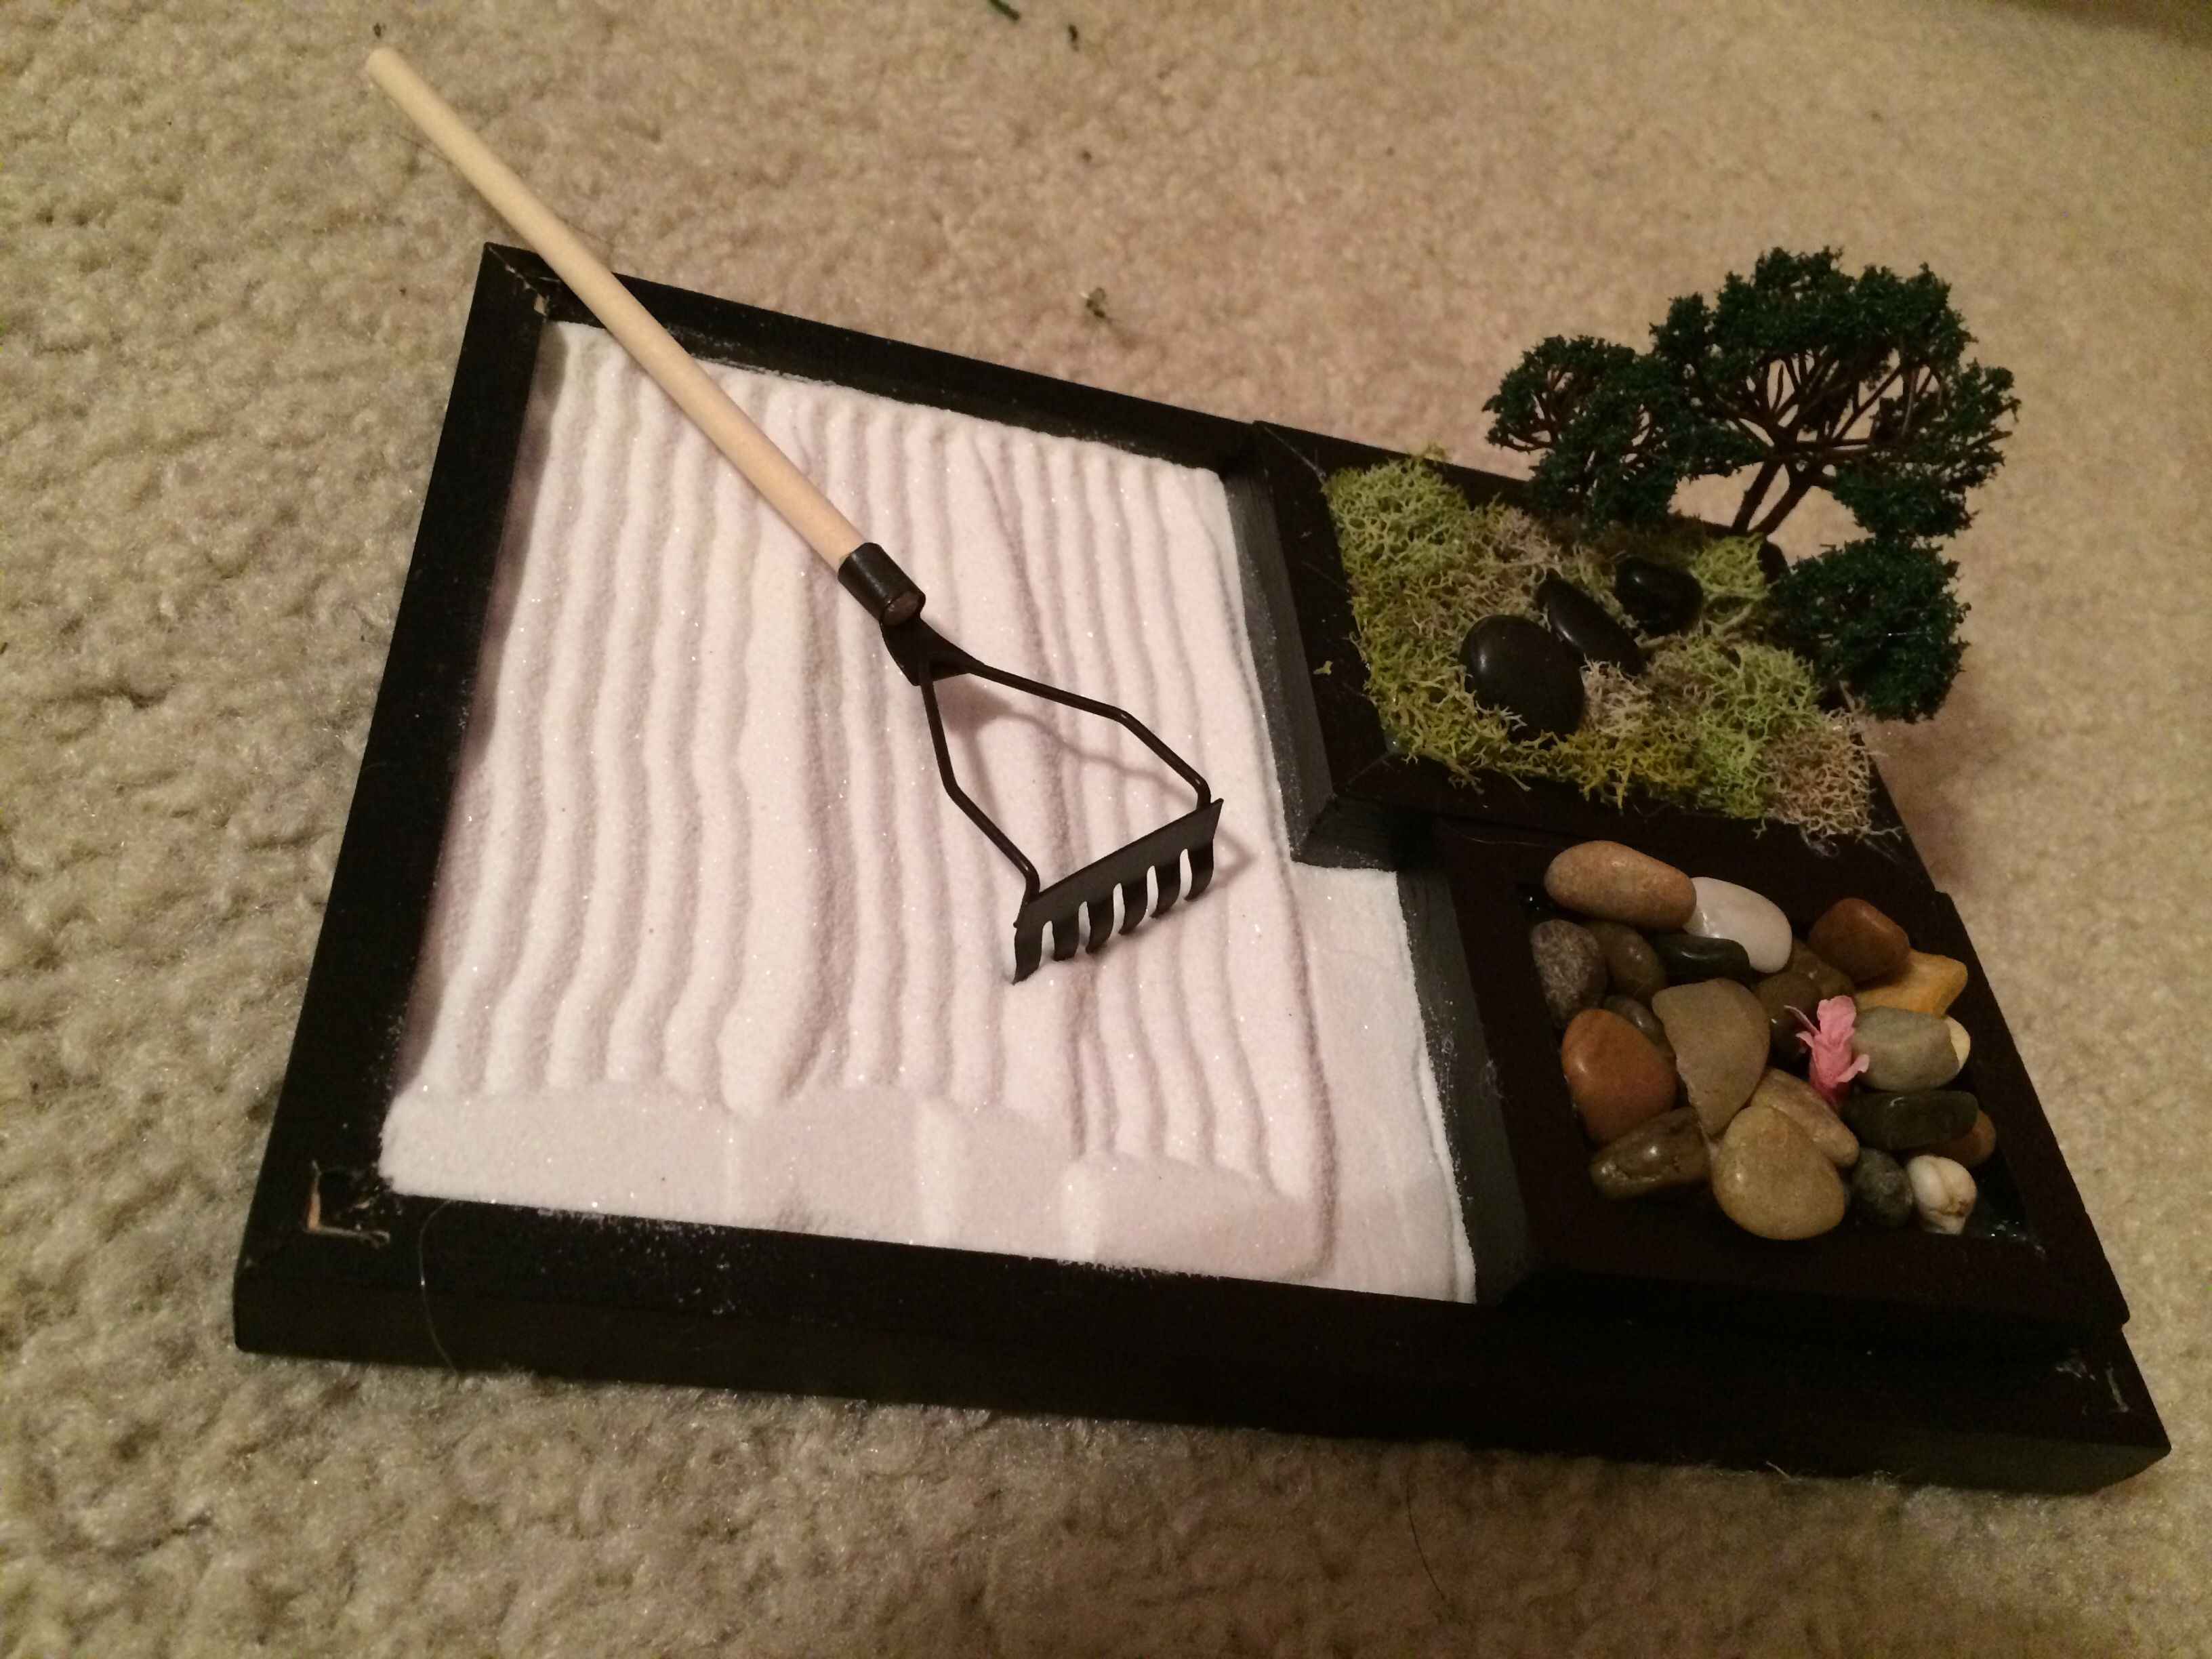 I Made A Zen Garden Out Of Small Canvases Moss River Stones Sand Doll House Mini Tools Tiny Landscaping Tree Zen Garden Desktop Zen Garden Zen Sand Garden